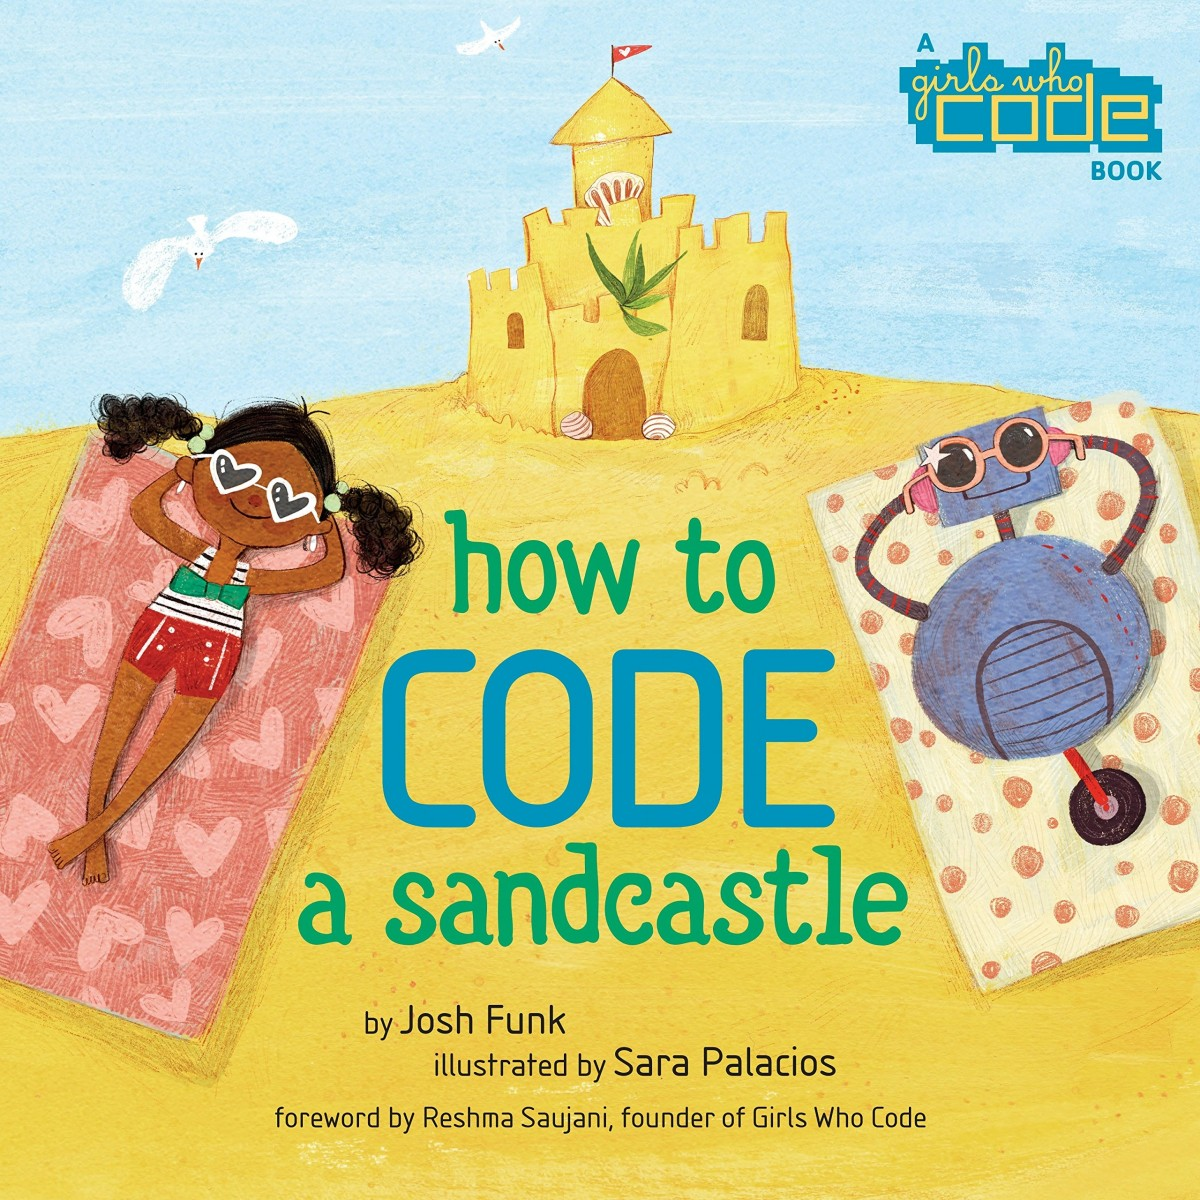 How to CODE a Sandcastle book cover